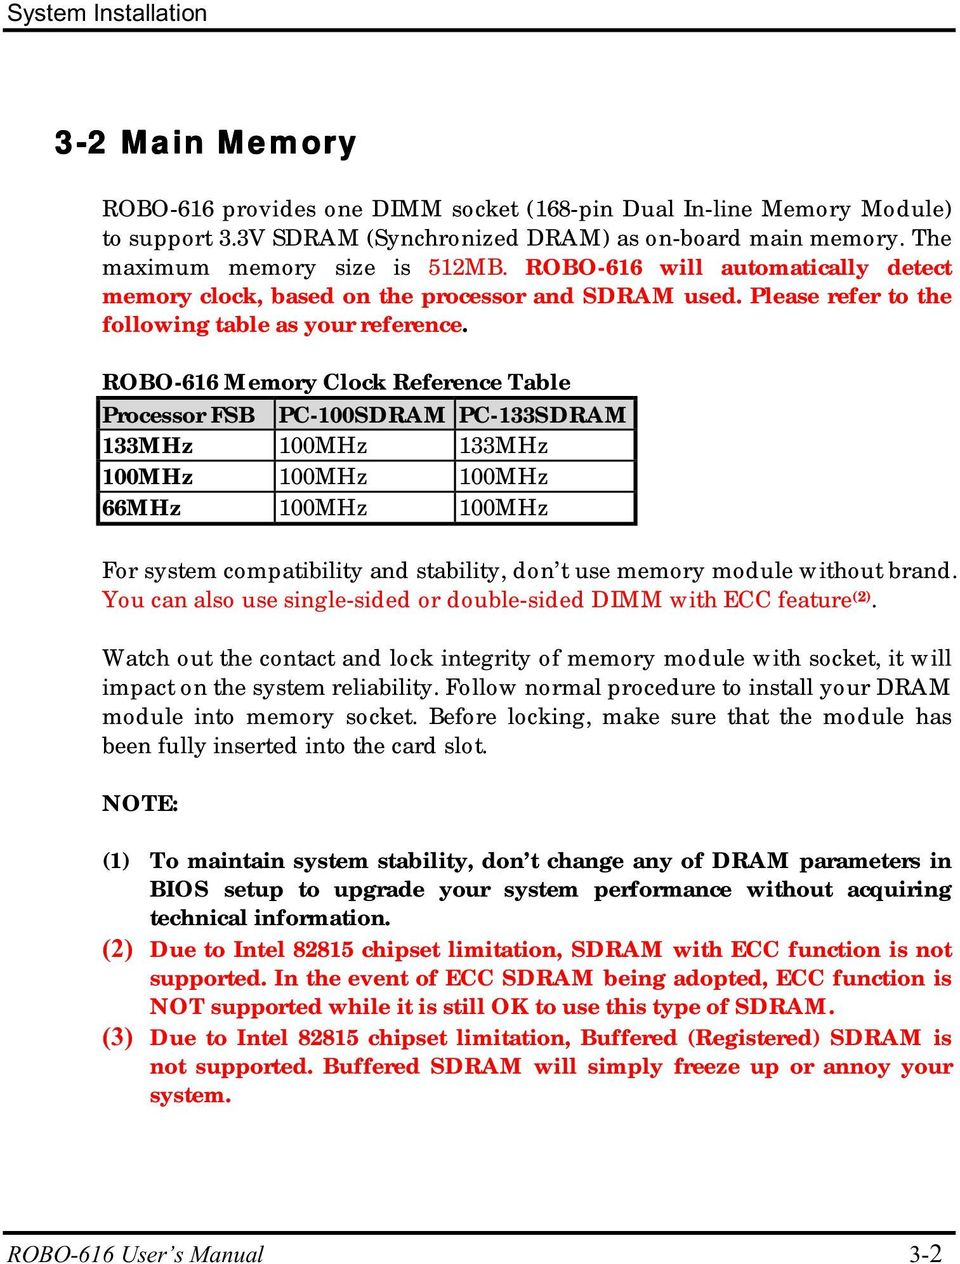 ROBO-616 Memory Clock Reference Table Processor FSB PC-100SDRAM PC-133SDRAM 133MHz 100MHz 133MHz 100MHz 100MHz 100MHz 66MHz 100MHz 100MHz For system compatibility and stability, don t use memory